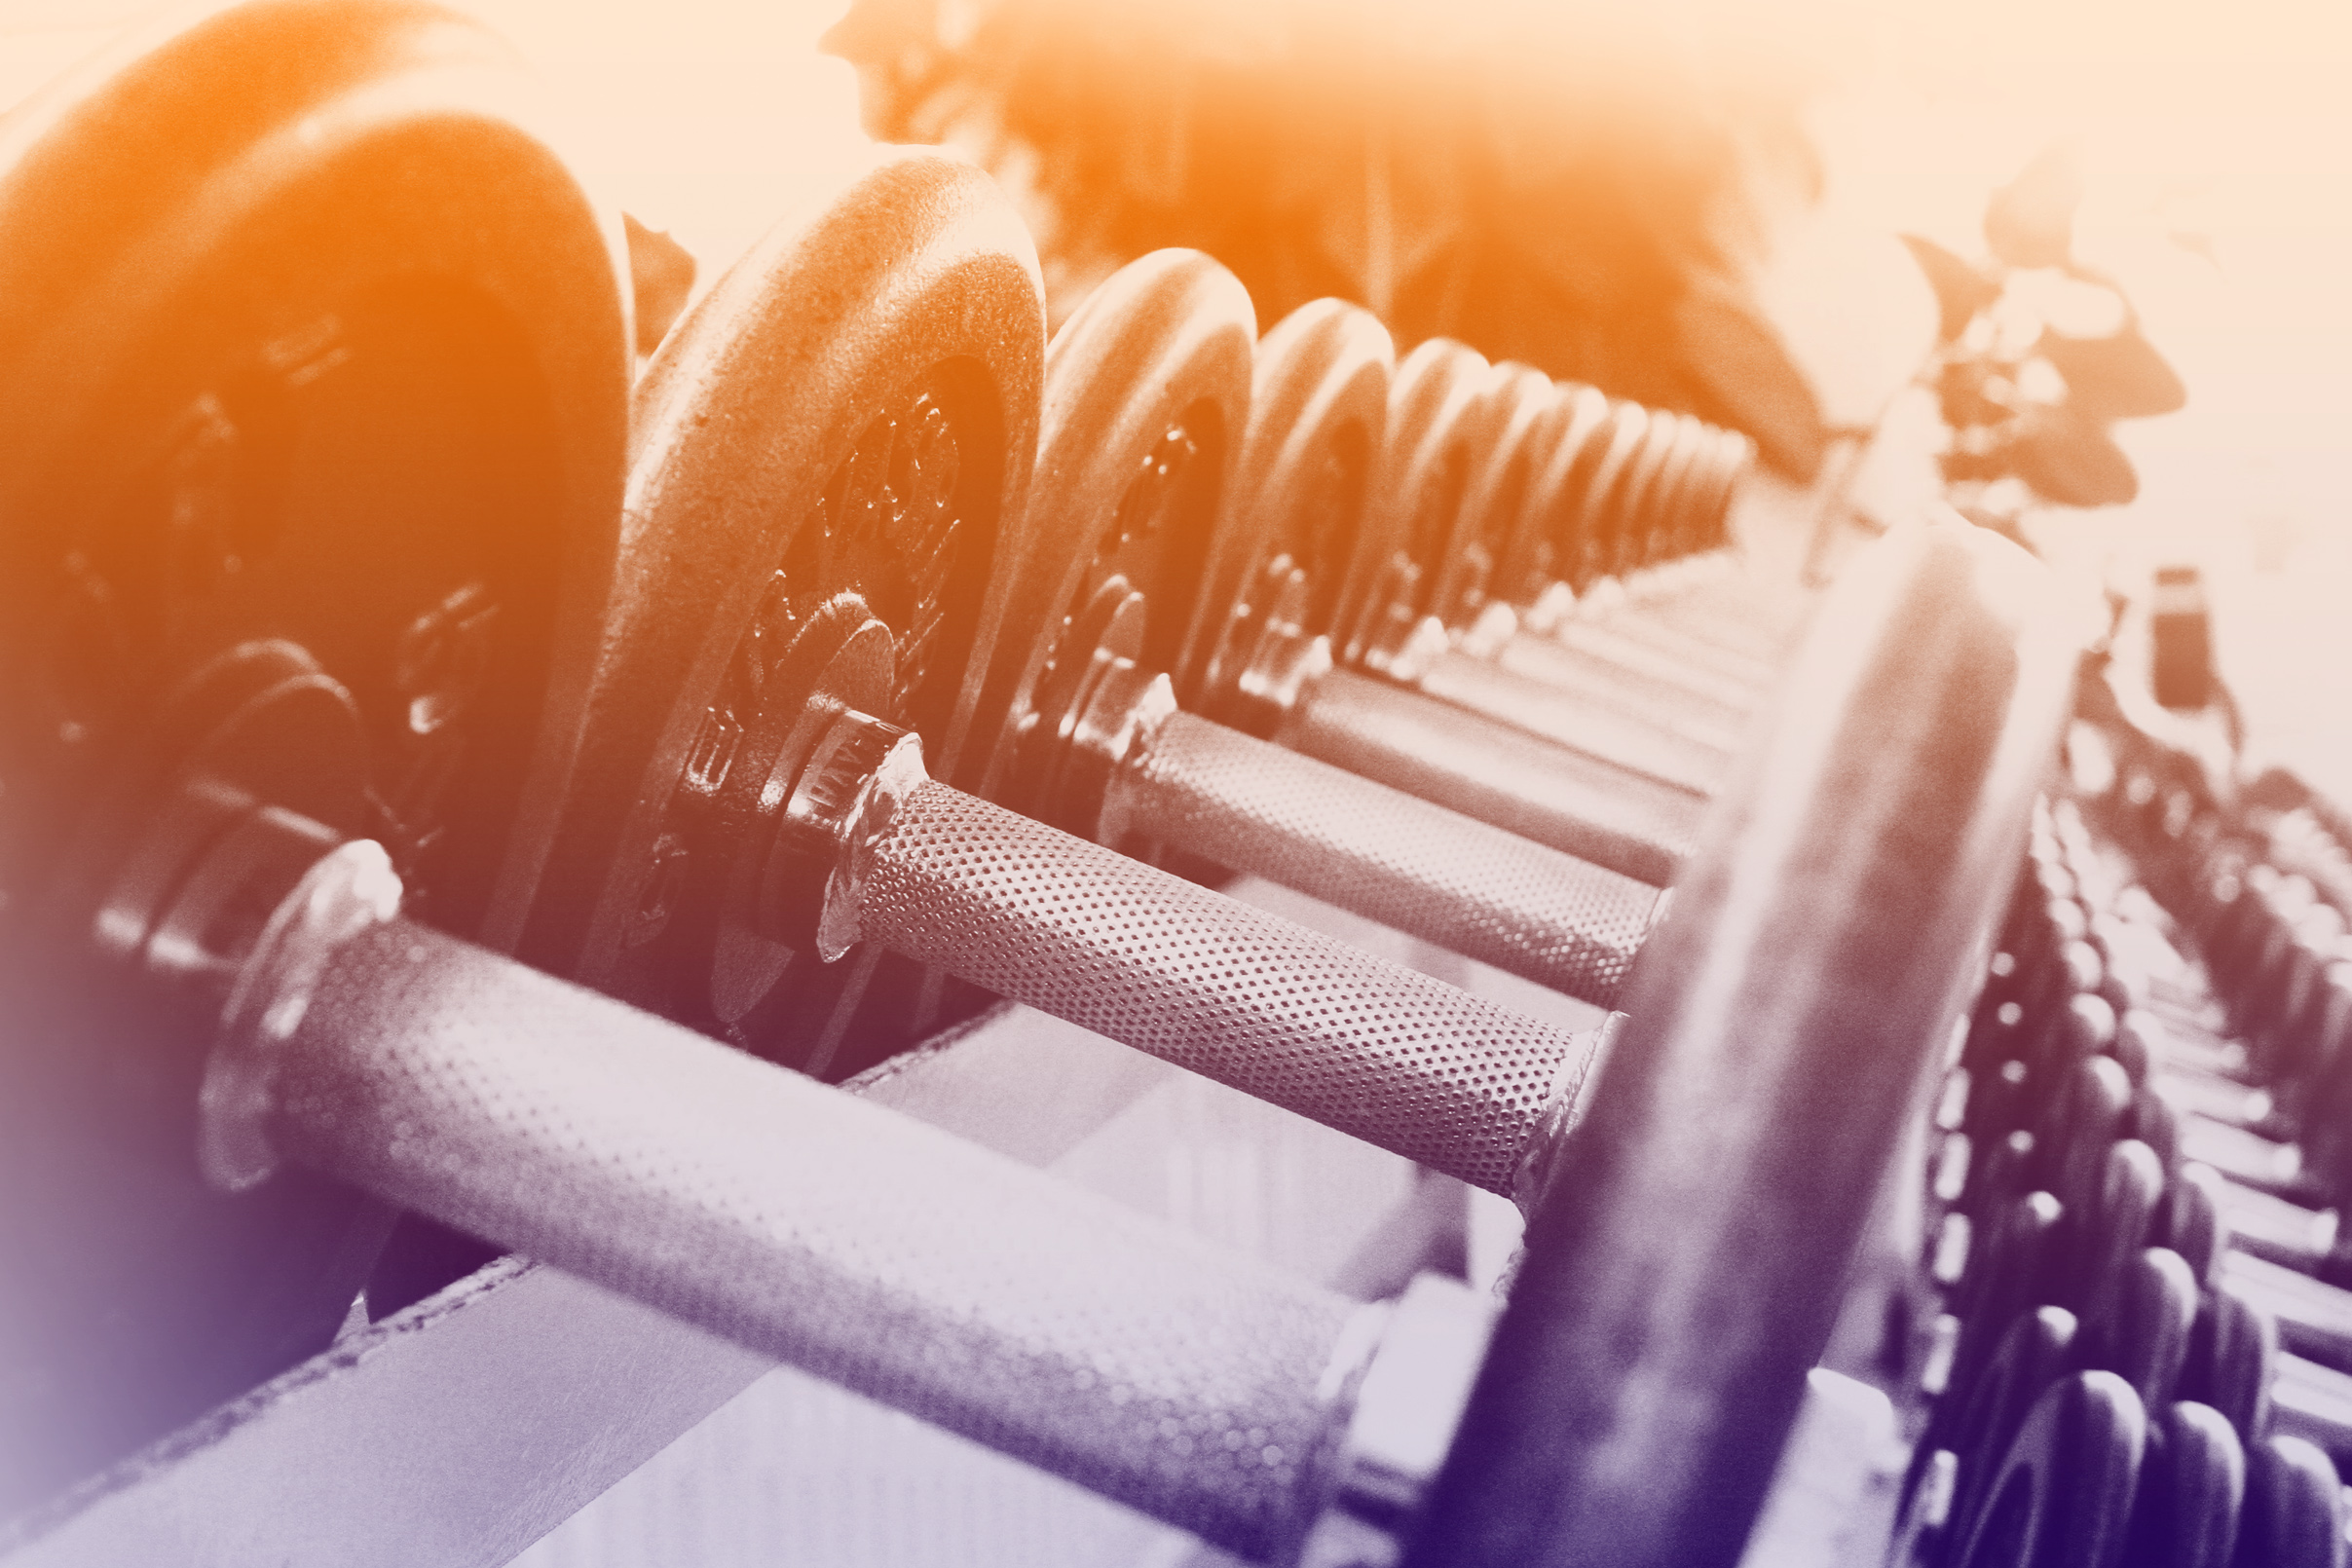 Dumbbells in a Row - Fitness Concept, Activity, Shape, Nobody, Objects, HQ Photo